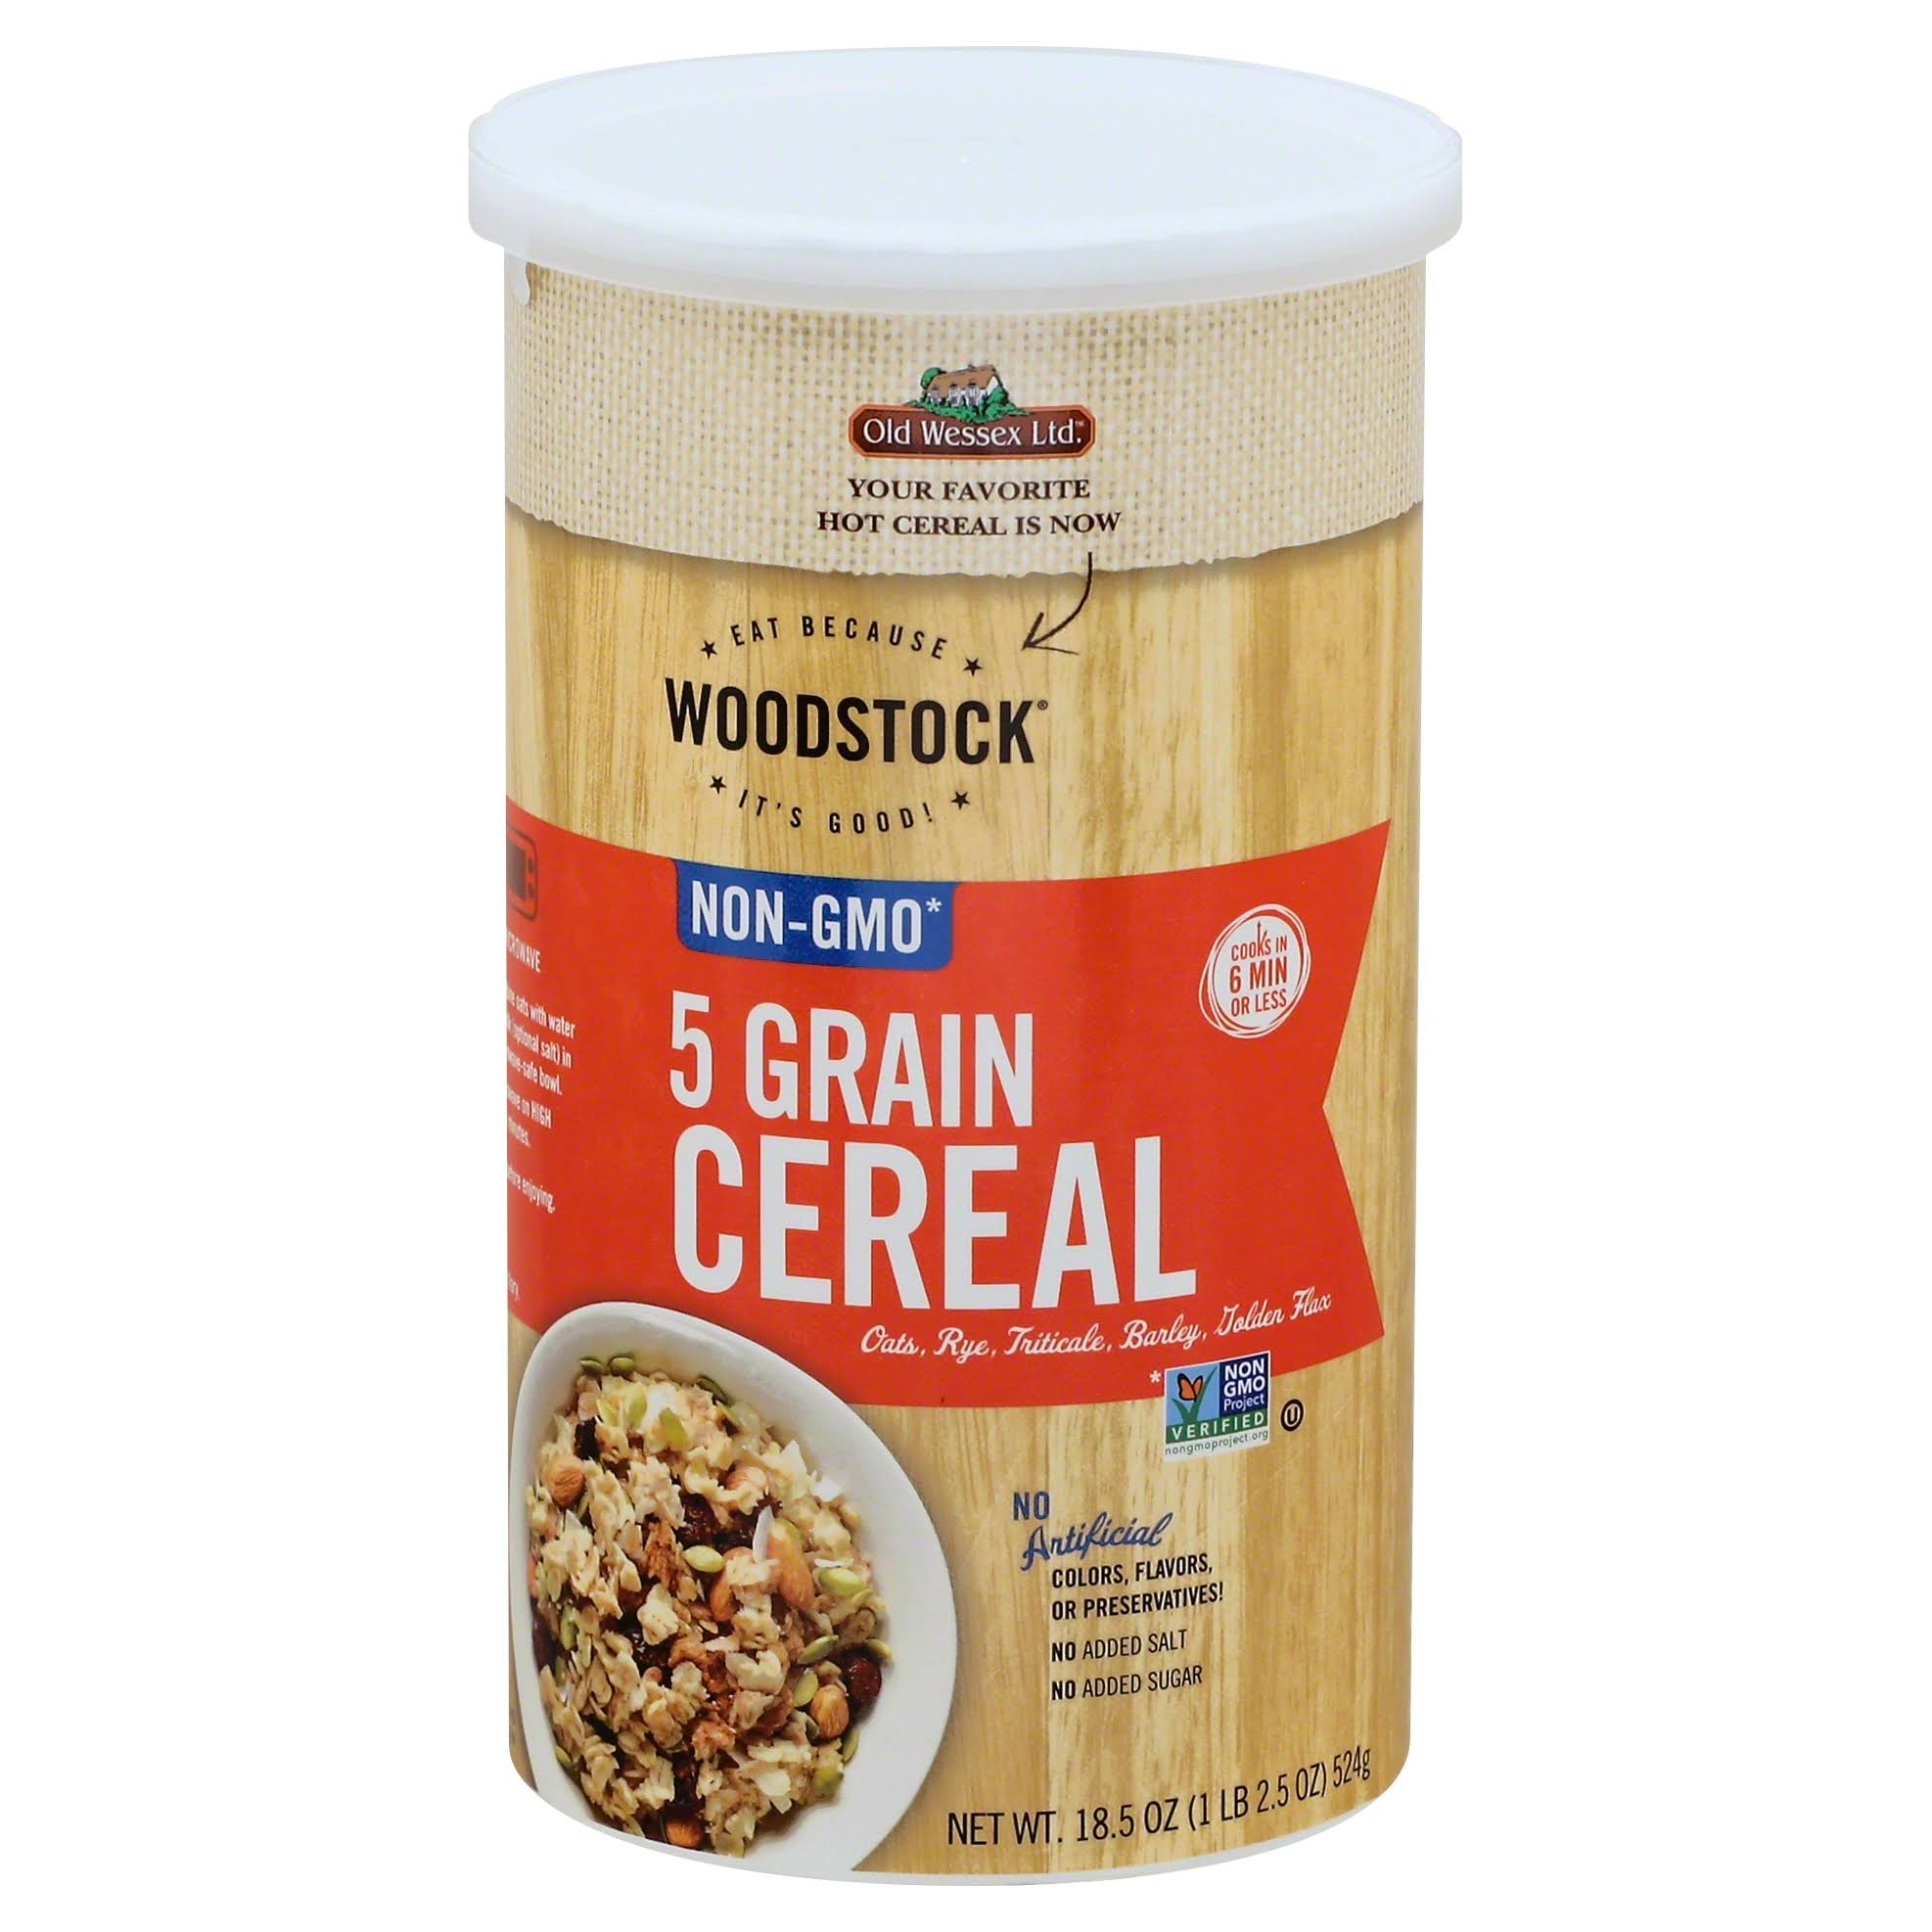 Woodstock 5 Grain Cereal - 18.5oz